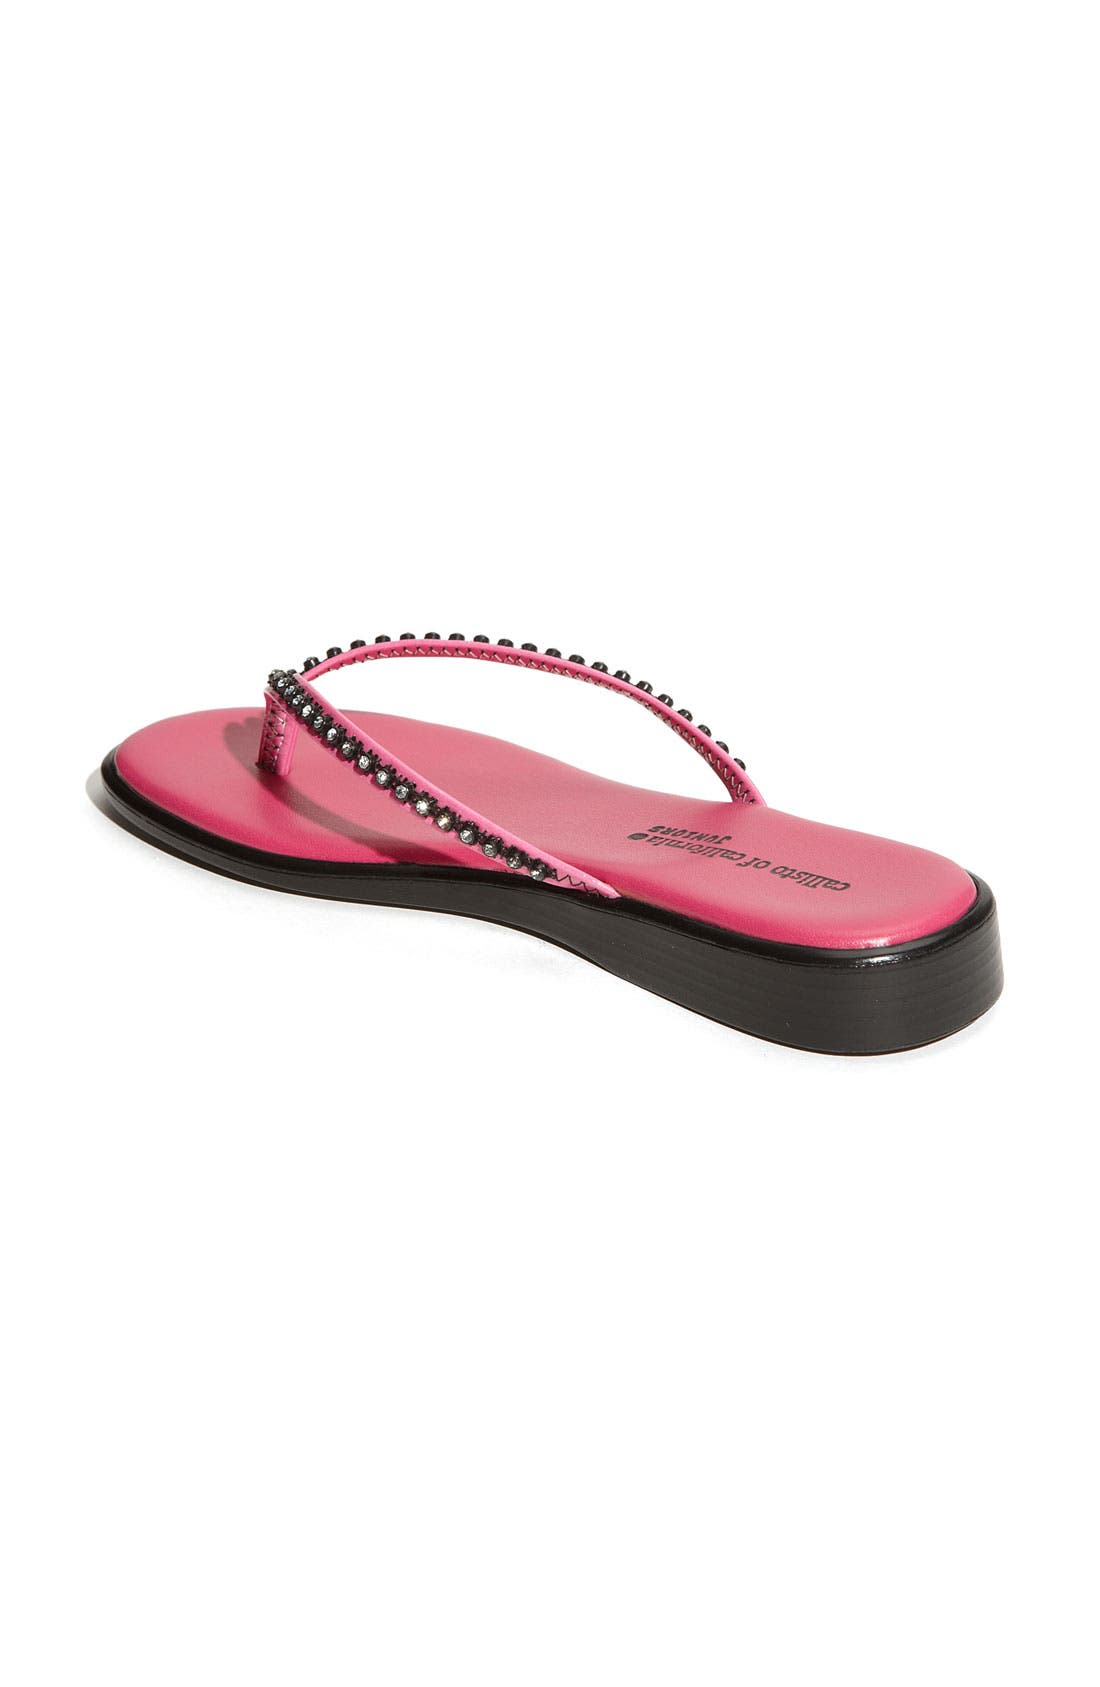 Alternate Image 2  - Callisto 'Girly' Flip Flop (Toddler, Little Kid & Big Kid)